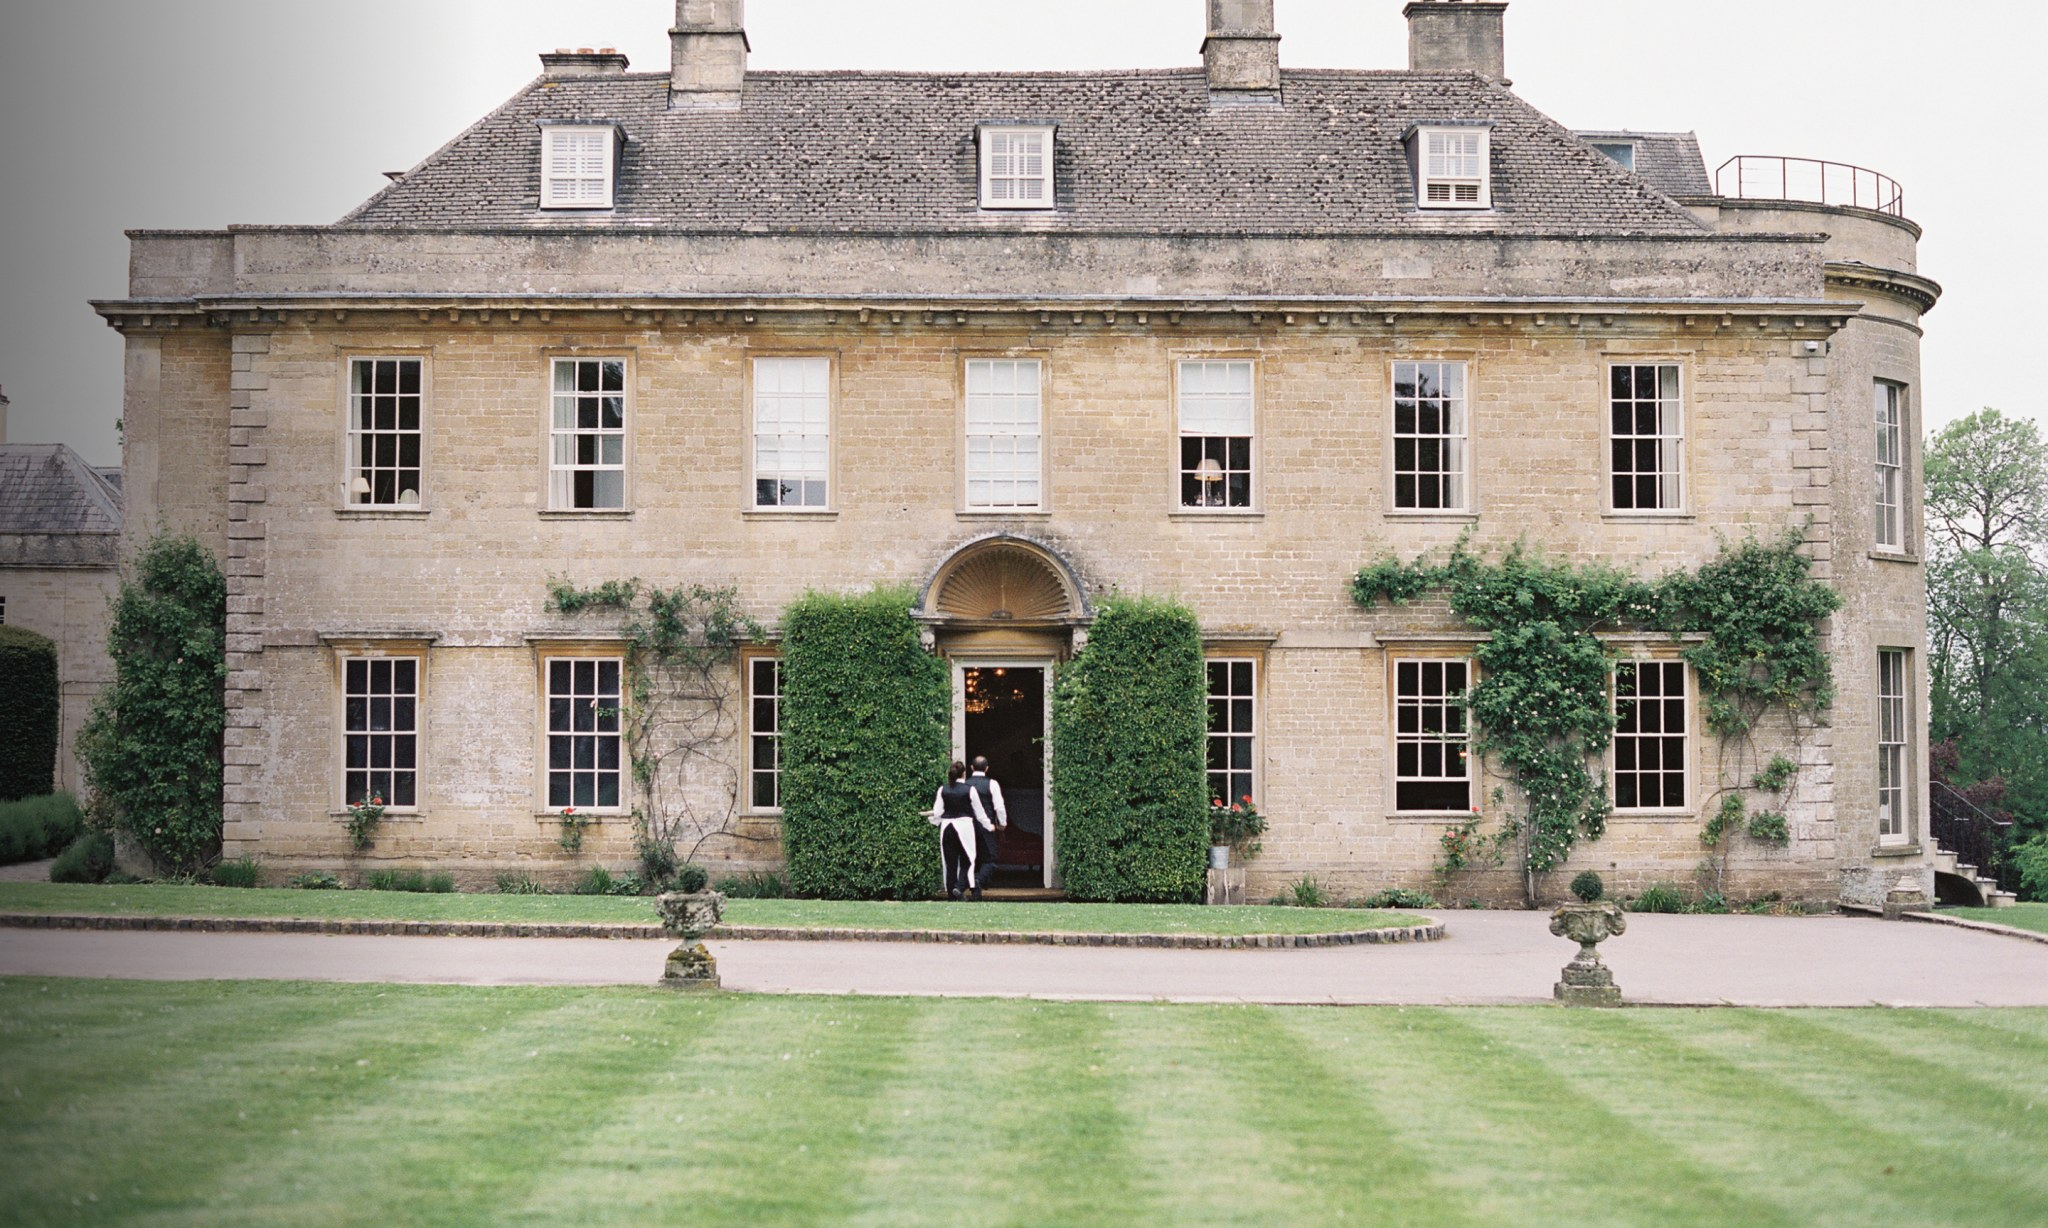 A large country house with waiters entering.